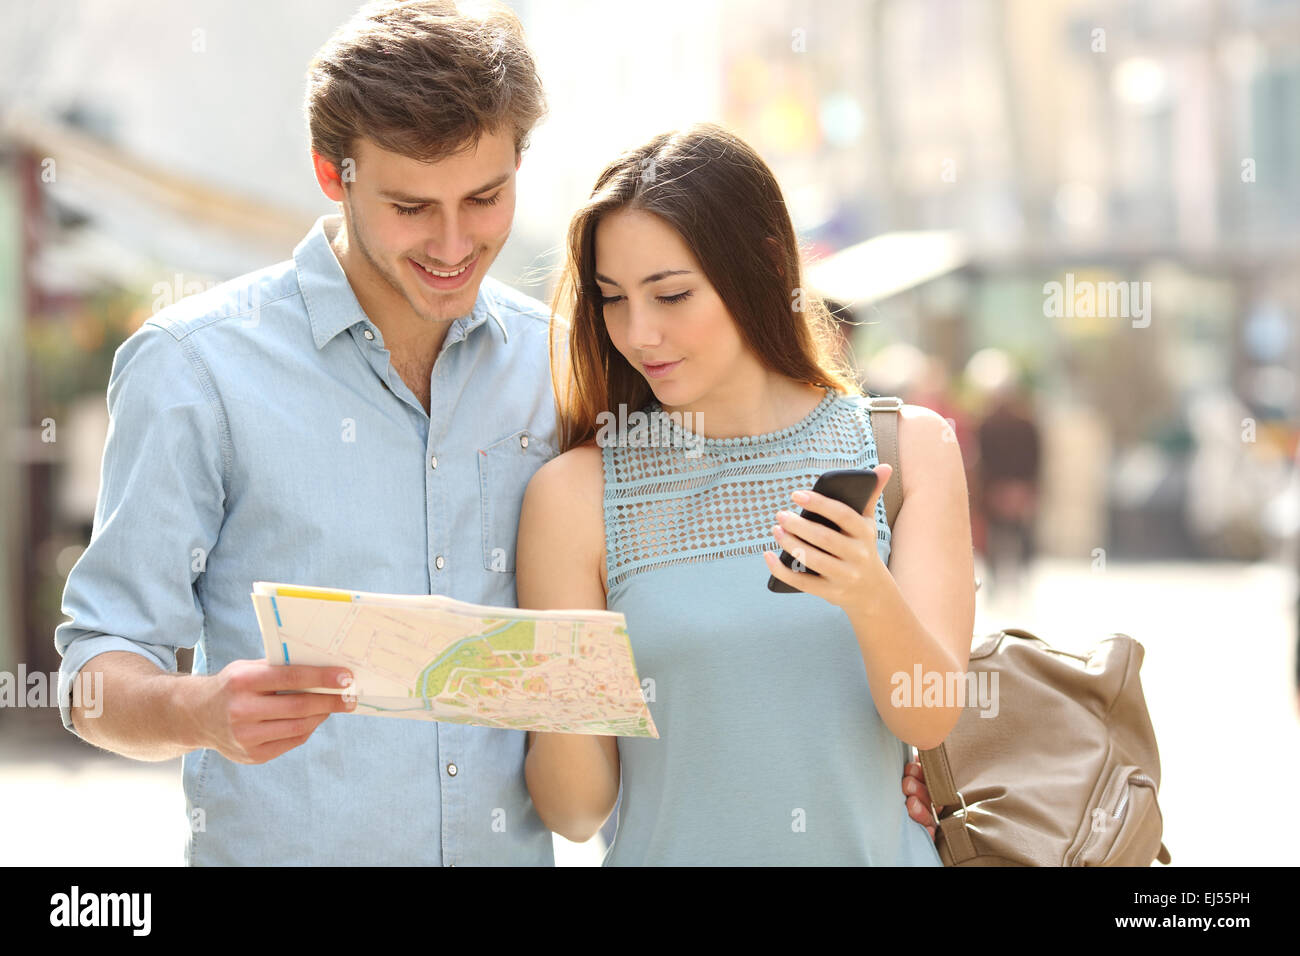 Couple of tourists consulting a city guide and mobile phone gps in a street - Stock Image